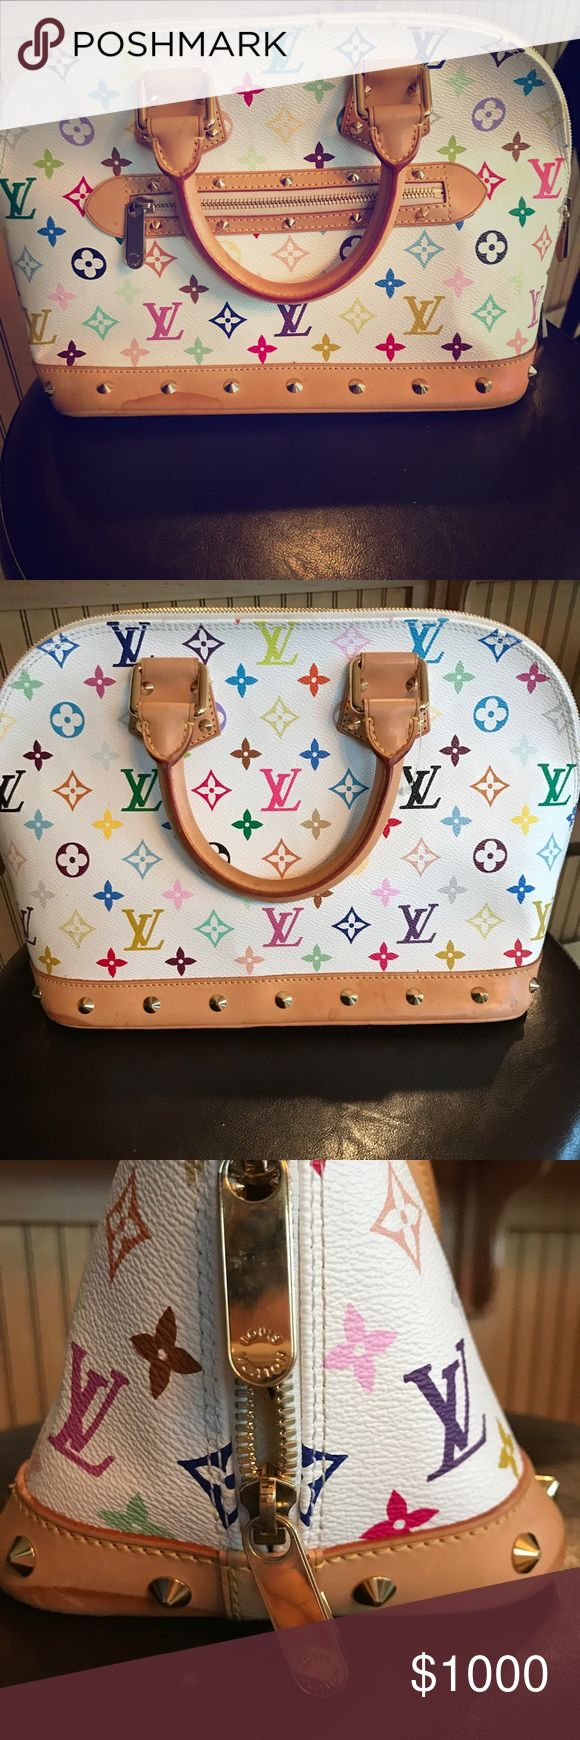 Authentic Louis Vuitton Monogram Multicolor Alma Authentic Louis Vuitton Multicolor monogram Alma bag from the spring 2003 collection. It does have some water stains and wear and tear from over the years. Overall it is a great bag! Height is 15 inches and width is 9 inches. Louis Vuitton Bags